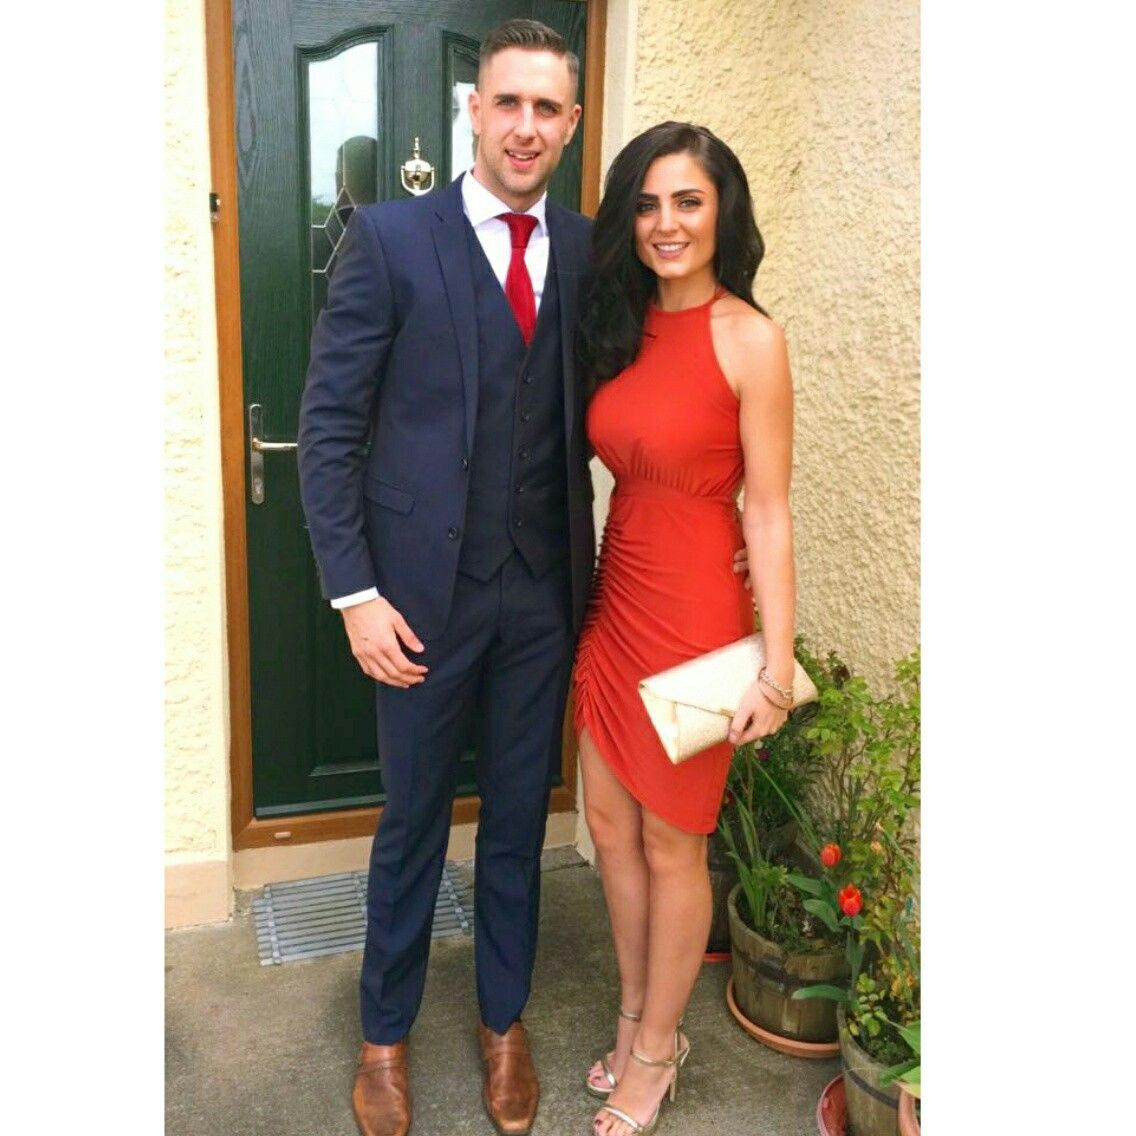 Summer Wedding Outfit Ideas: Suited And Booted Wedding Attire Couple Summer Rustic